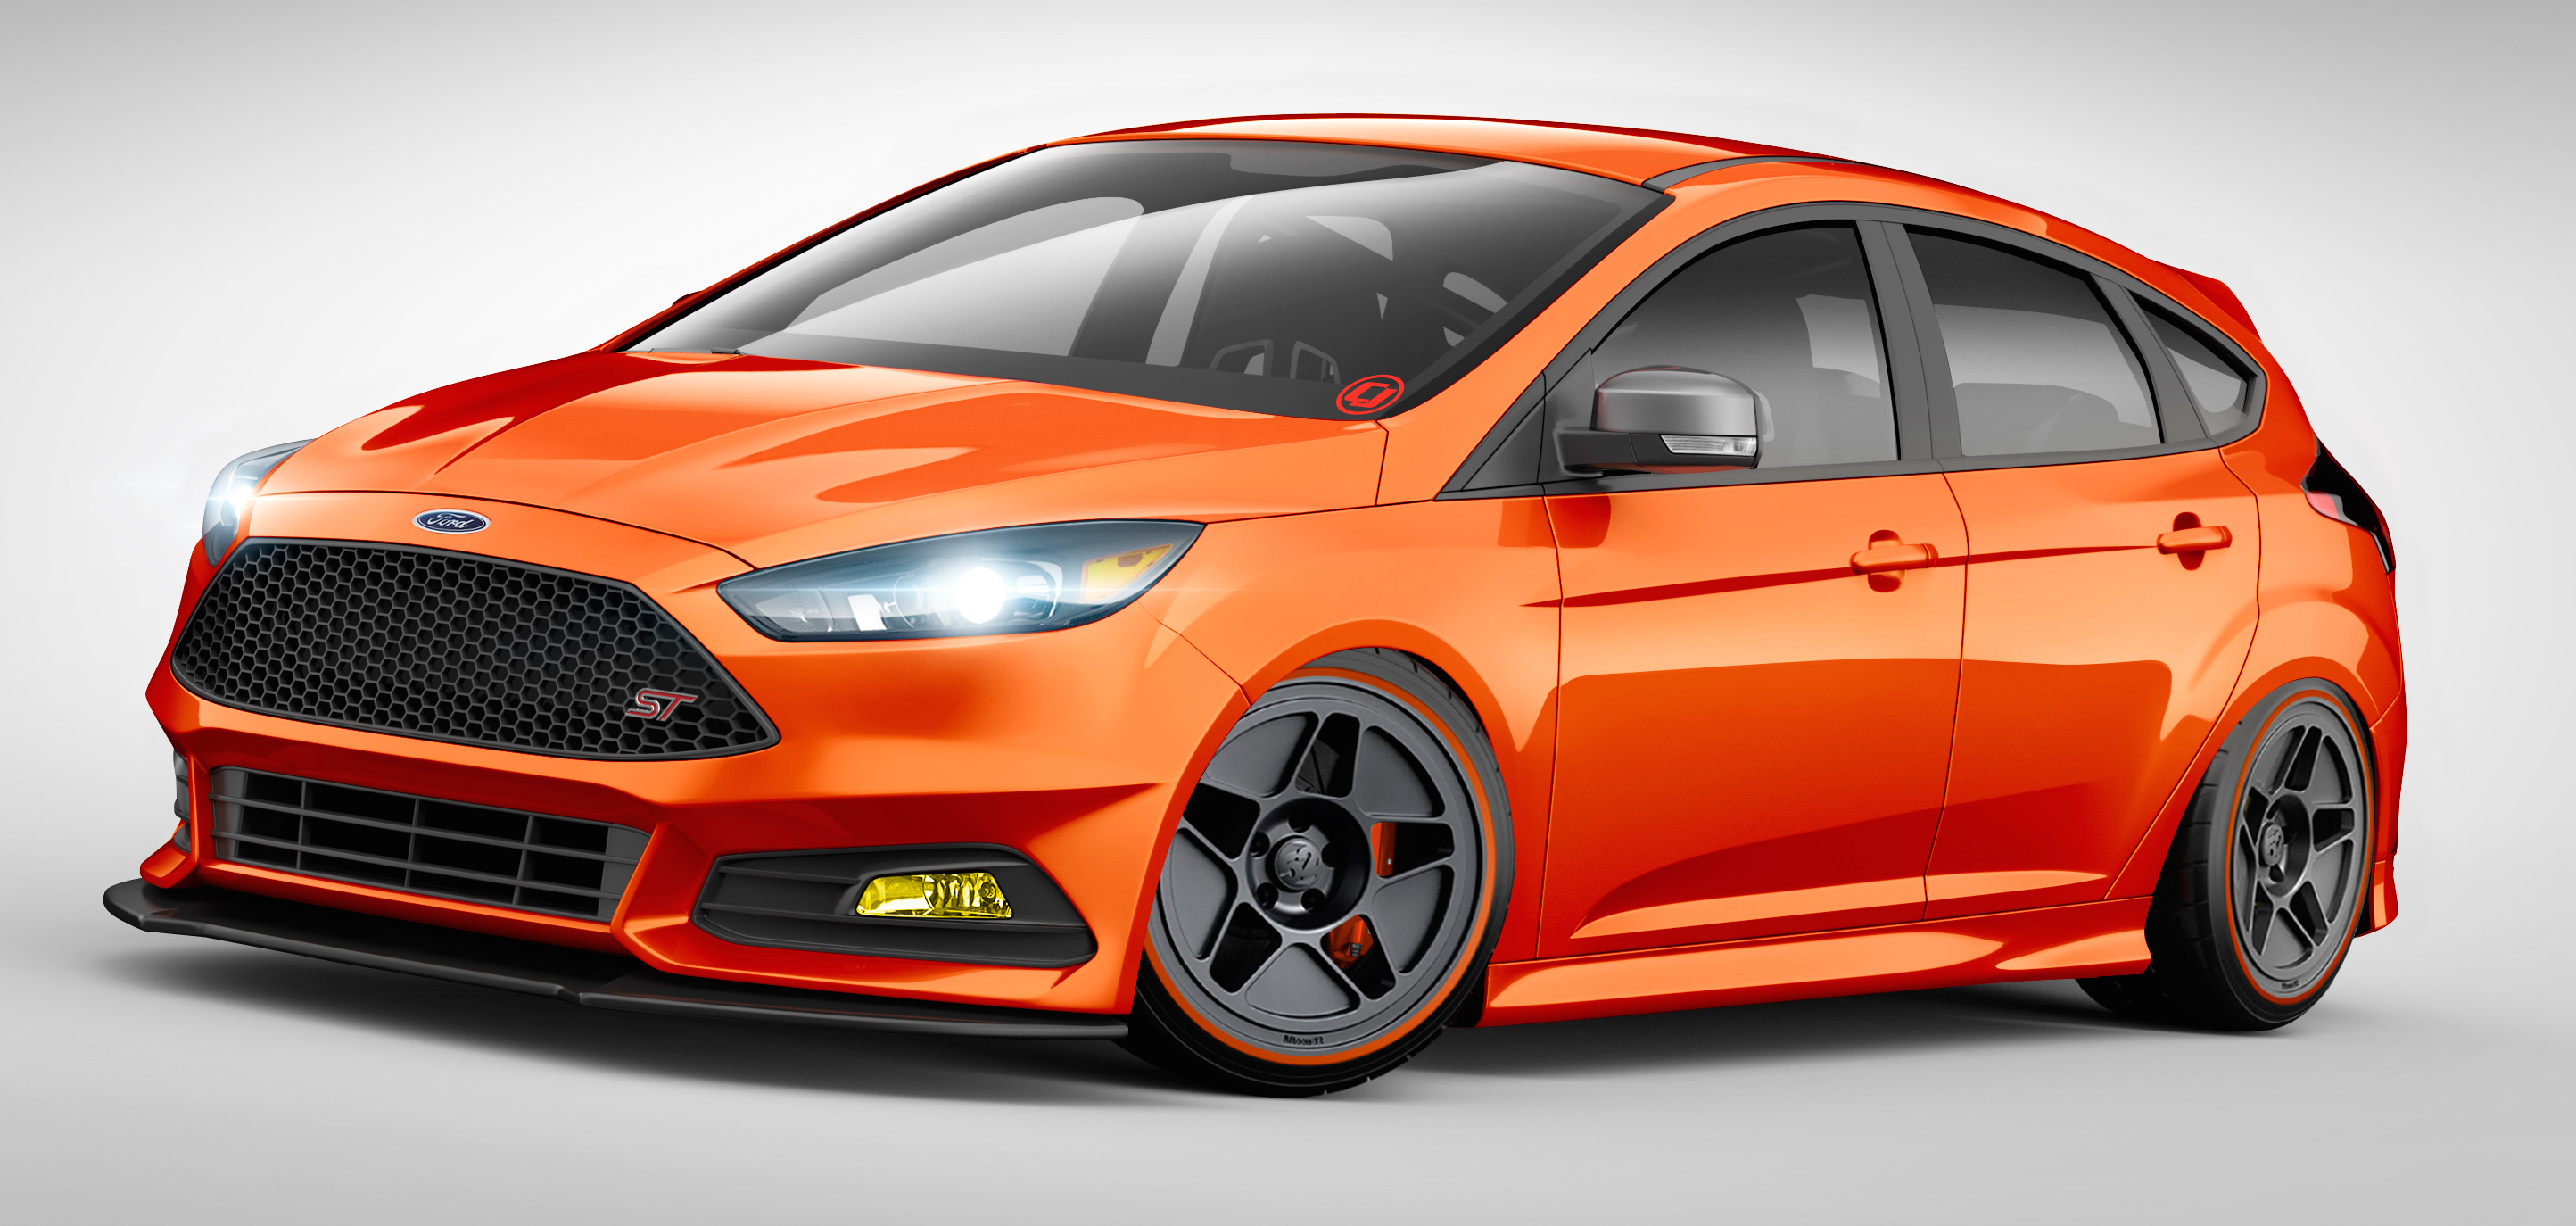 ford focus st and fiesta st custom mods for sema image 400255. Black Bedroom Furniture Sets. Home Design Ideas